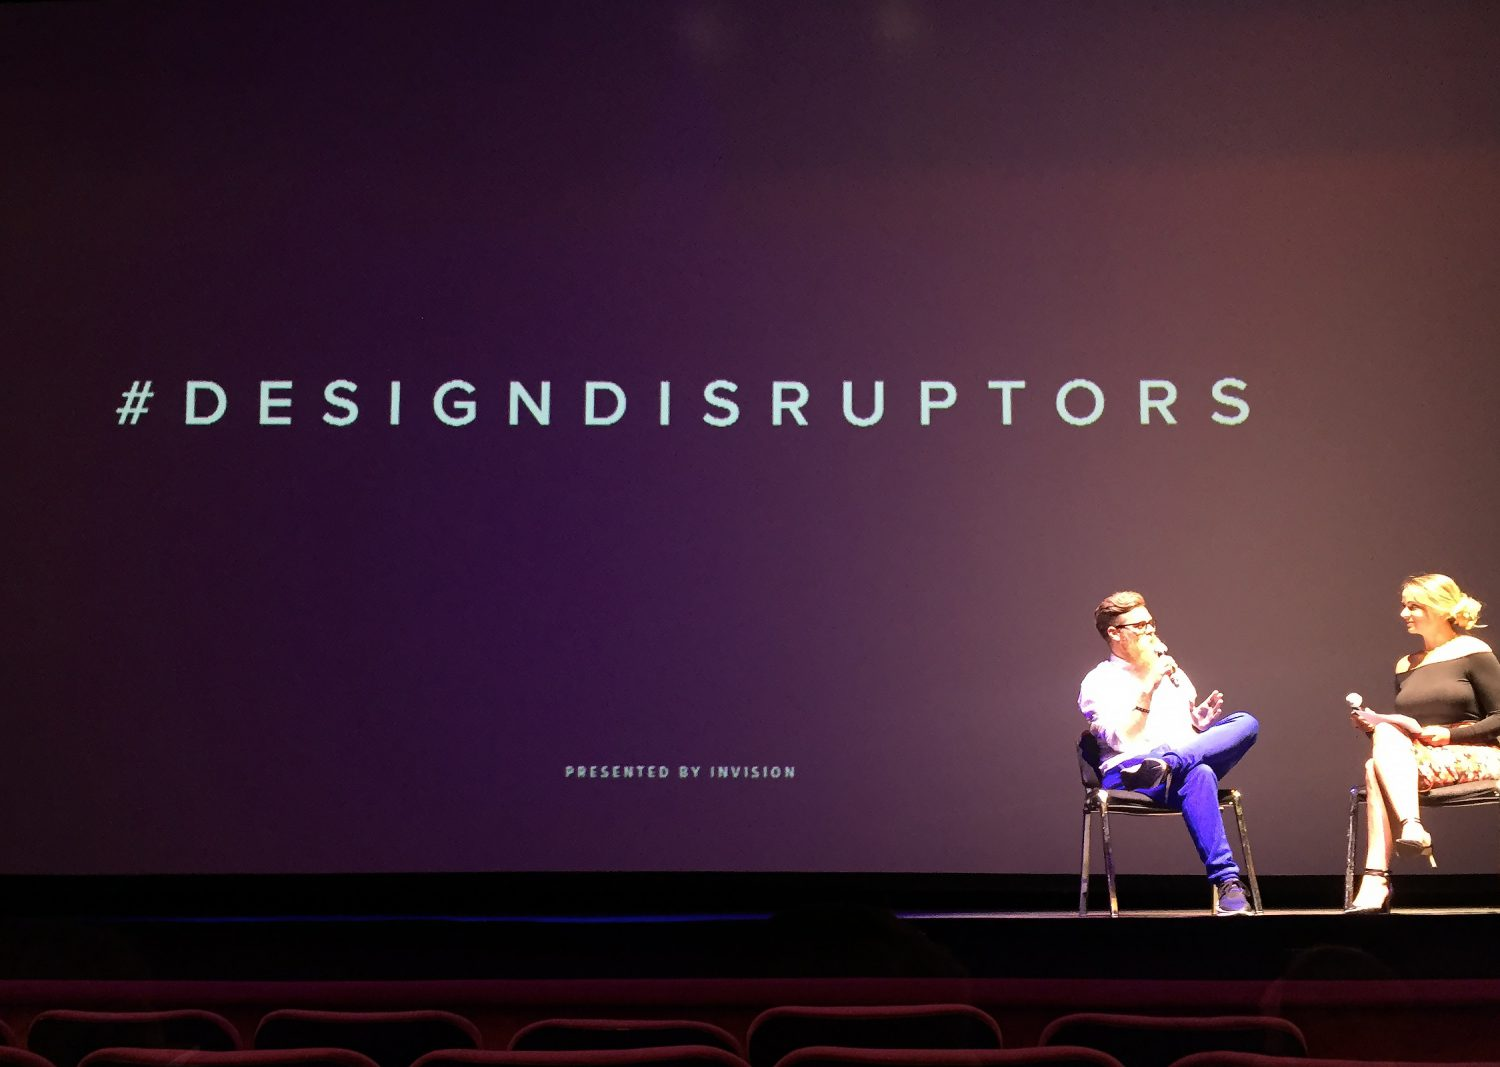 design-disruptors-event-stage